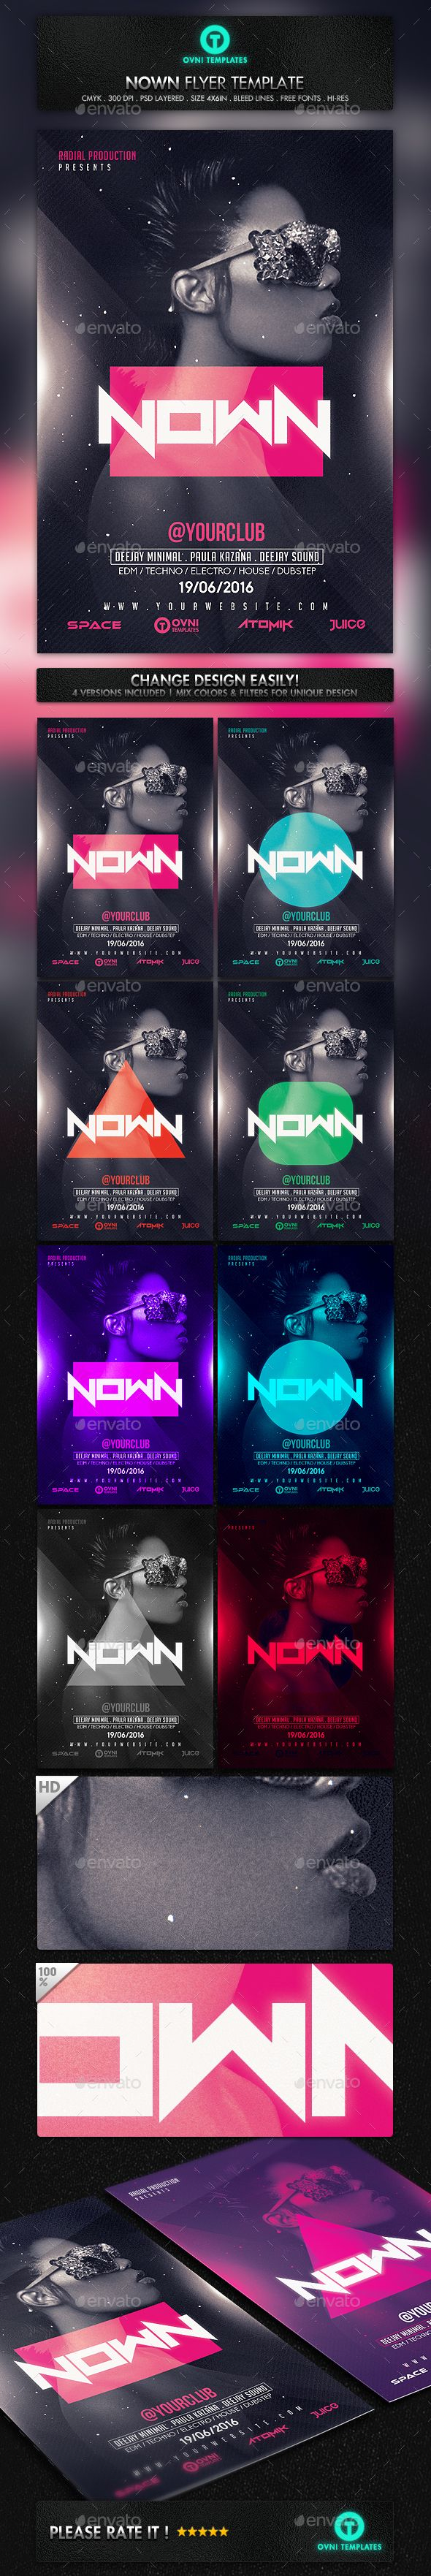 Electro Futuristic Neon Girl Flyer Template PSD #design Download: http://graphicriver.net/item/electro-futuristic-neon-girl-flyer-template/14506072?ref=ksioks